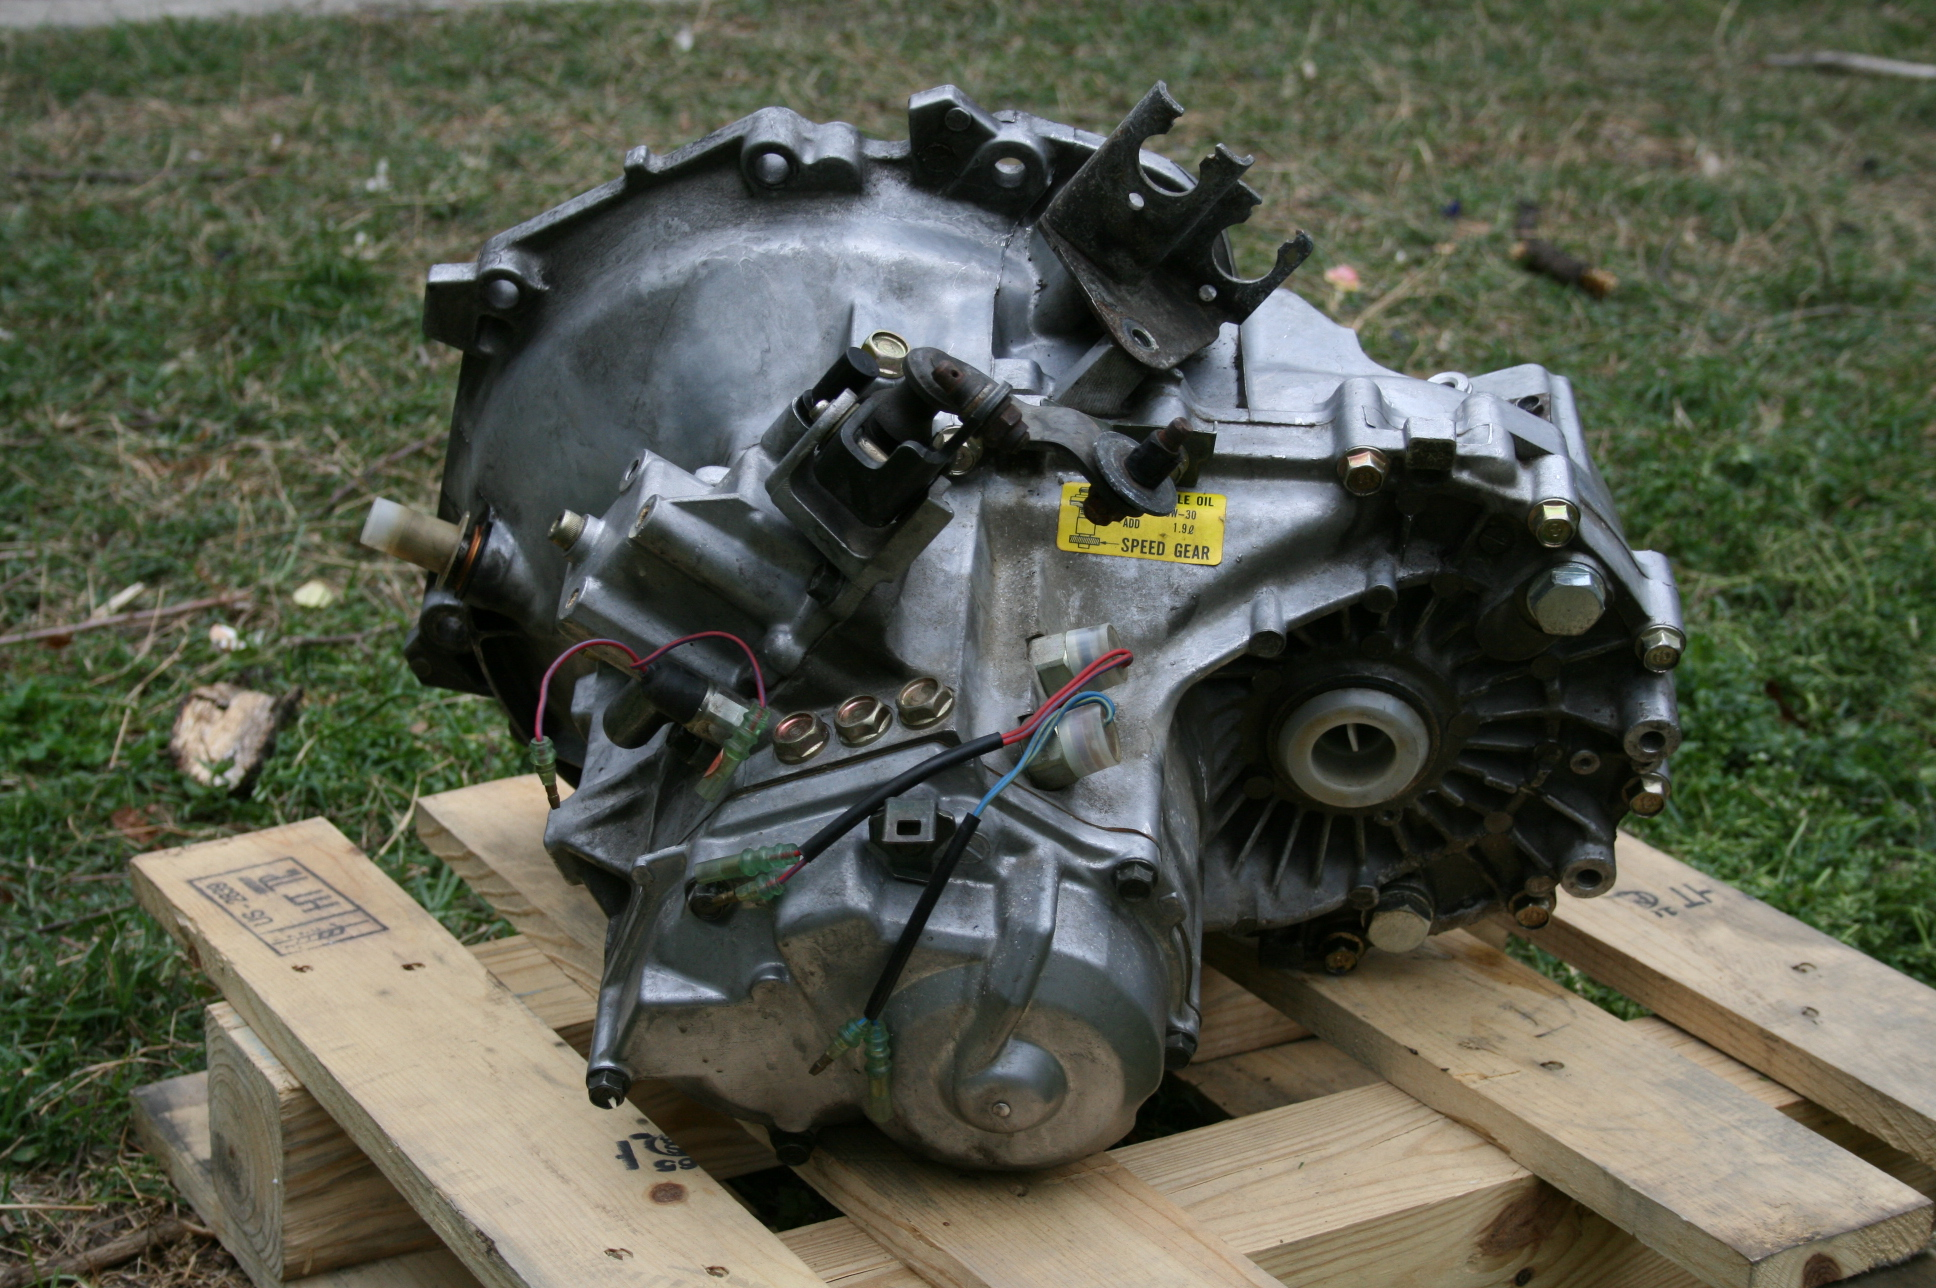 Manual Transmission >> File:2008-04-19 Manual transaxle - fender side.jpg - Wikimedia Commons